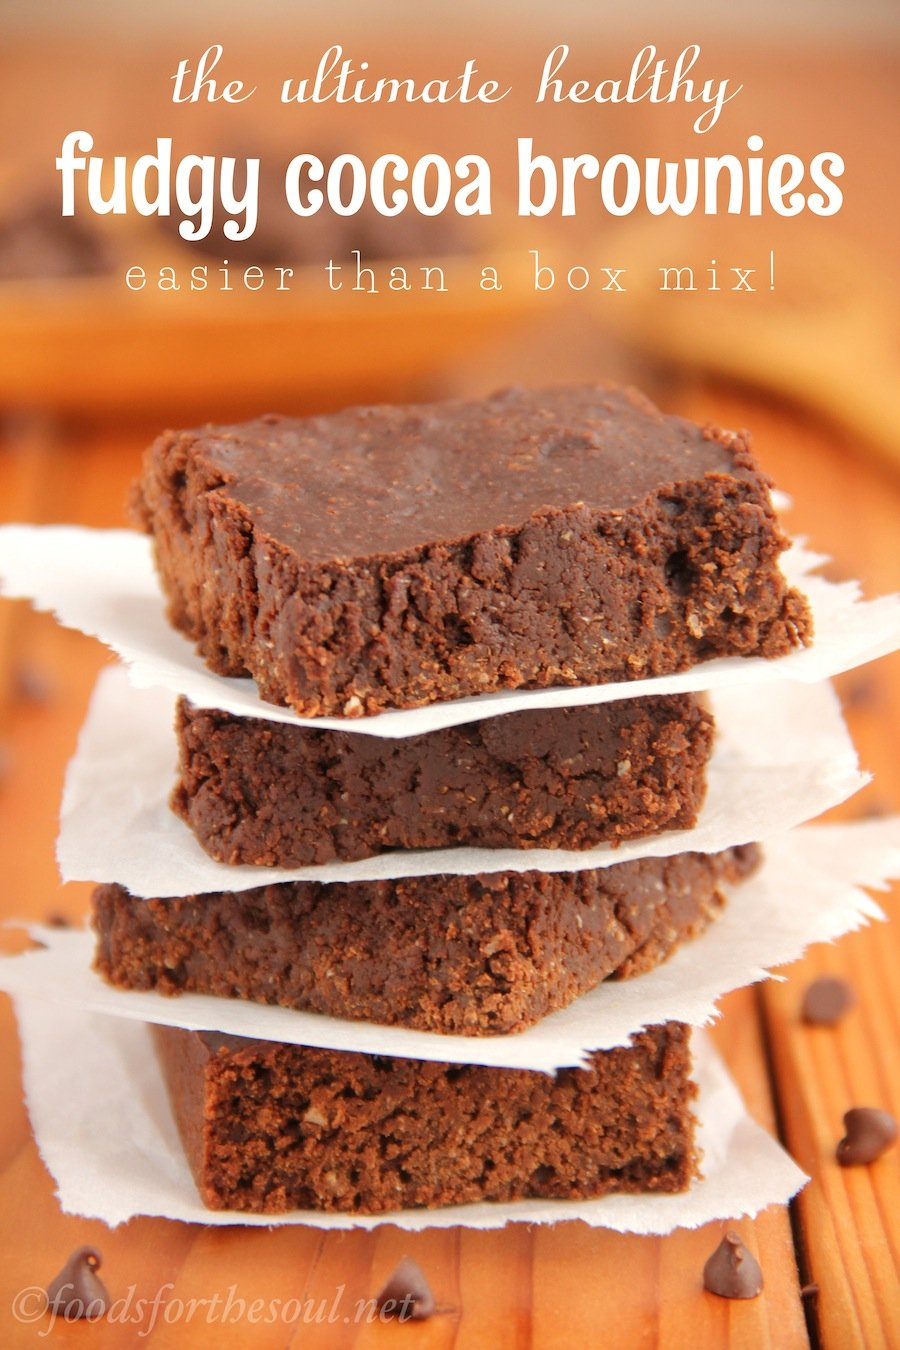 These fudgy brownies are SO rich & decadent! No one would ever guess they're secretly skinny & low fat. You'll never use another recipe again!